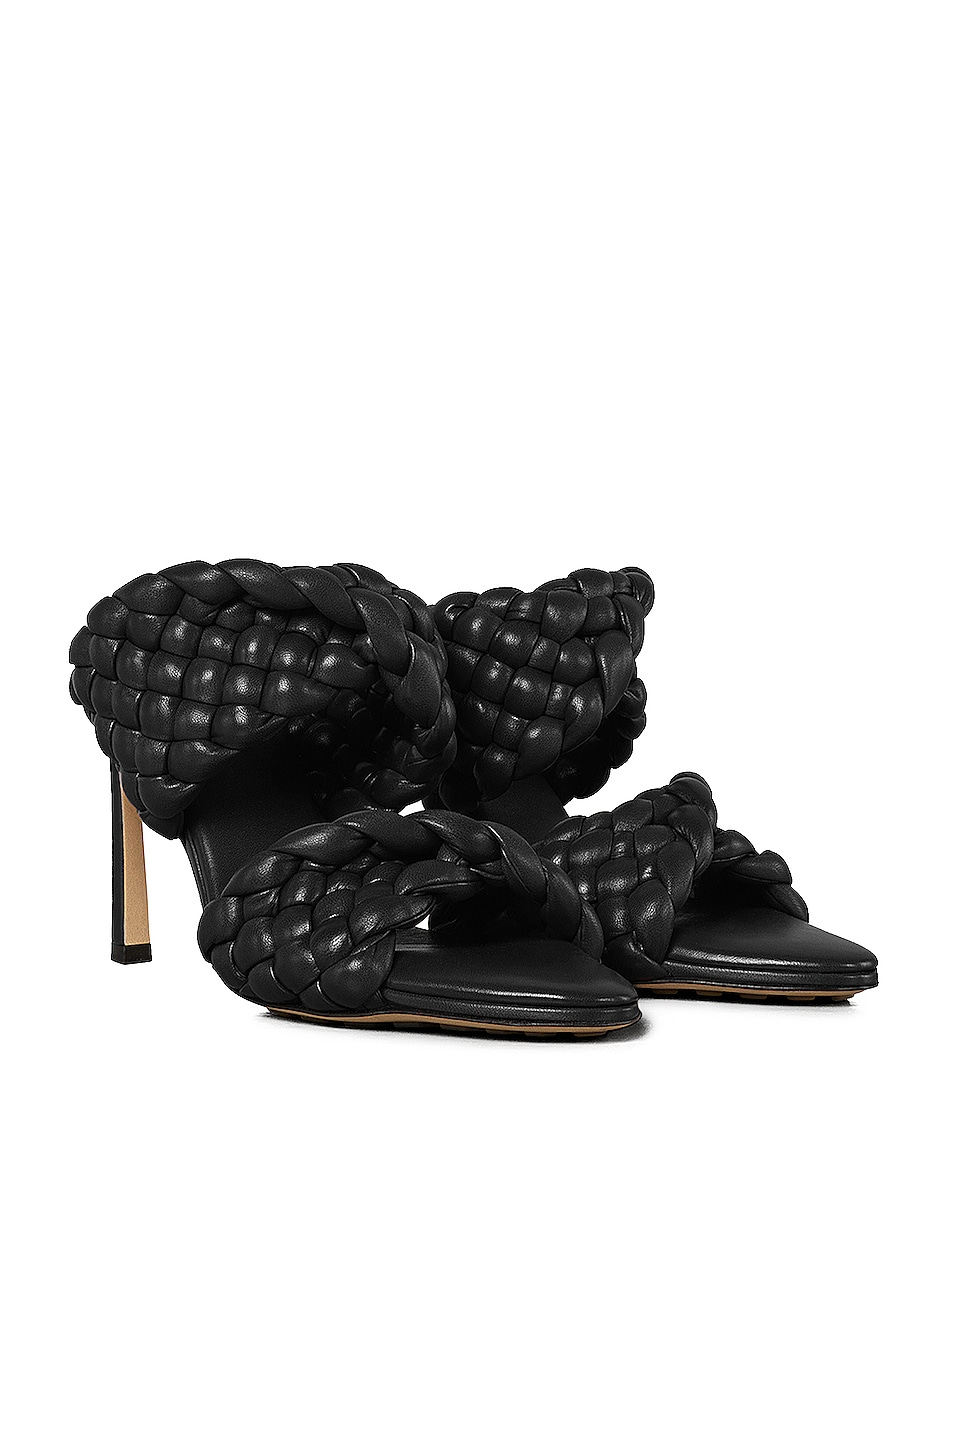 Image 2 of Bottega Veneta Padded Woven Leather Sandals in Black